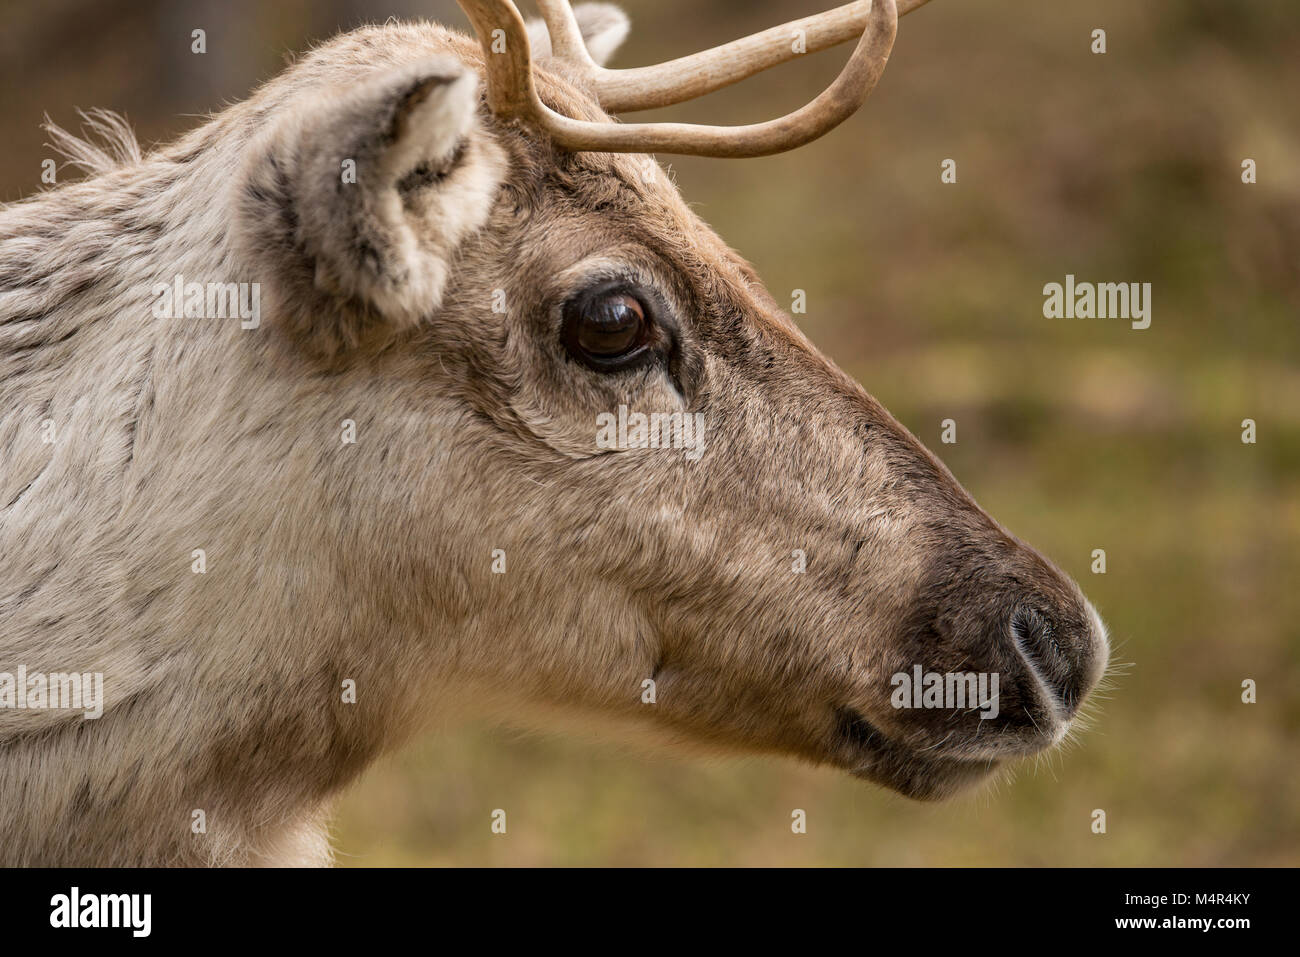 A brown reindeer with big eyes shot in Lapland, Finland in the spring - Stock Image